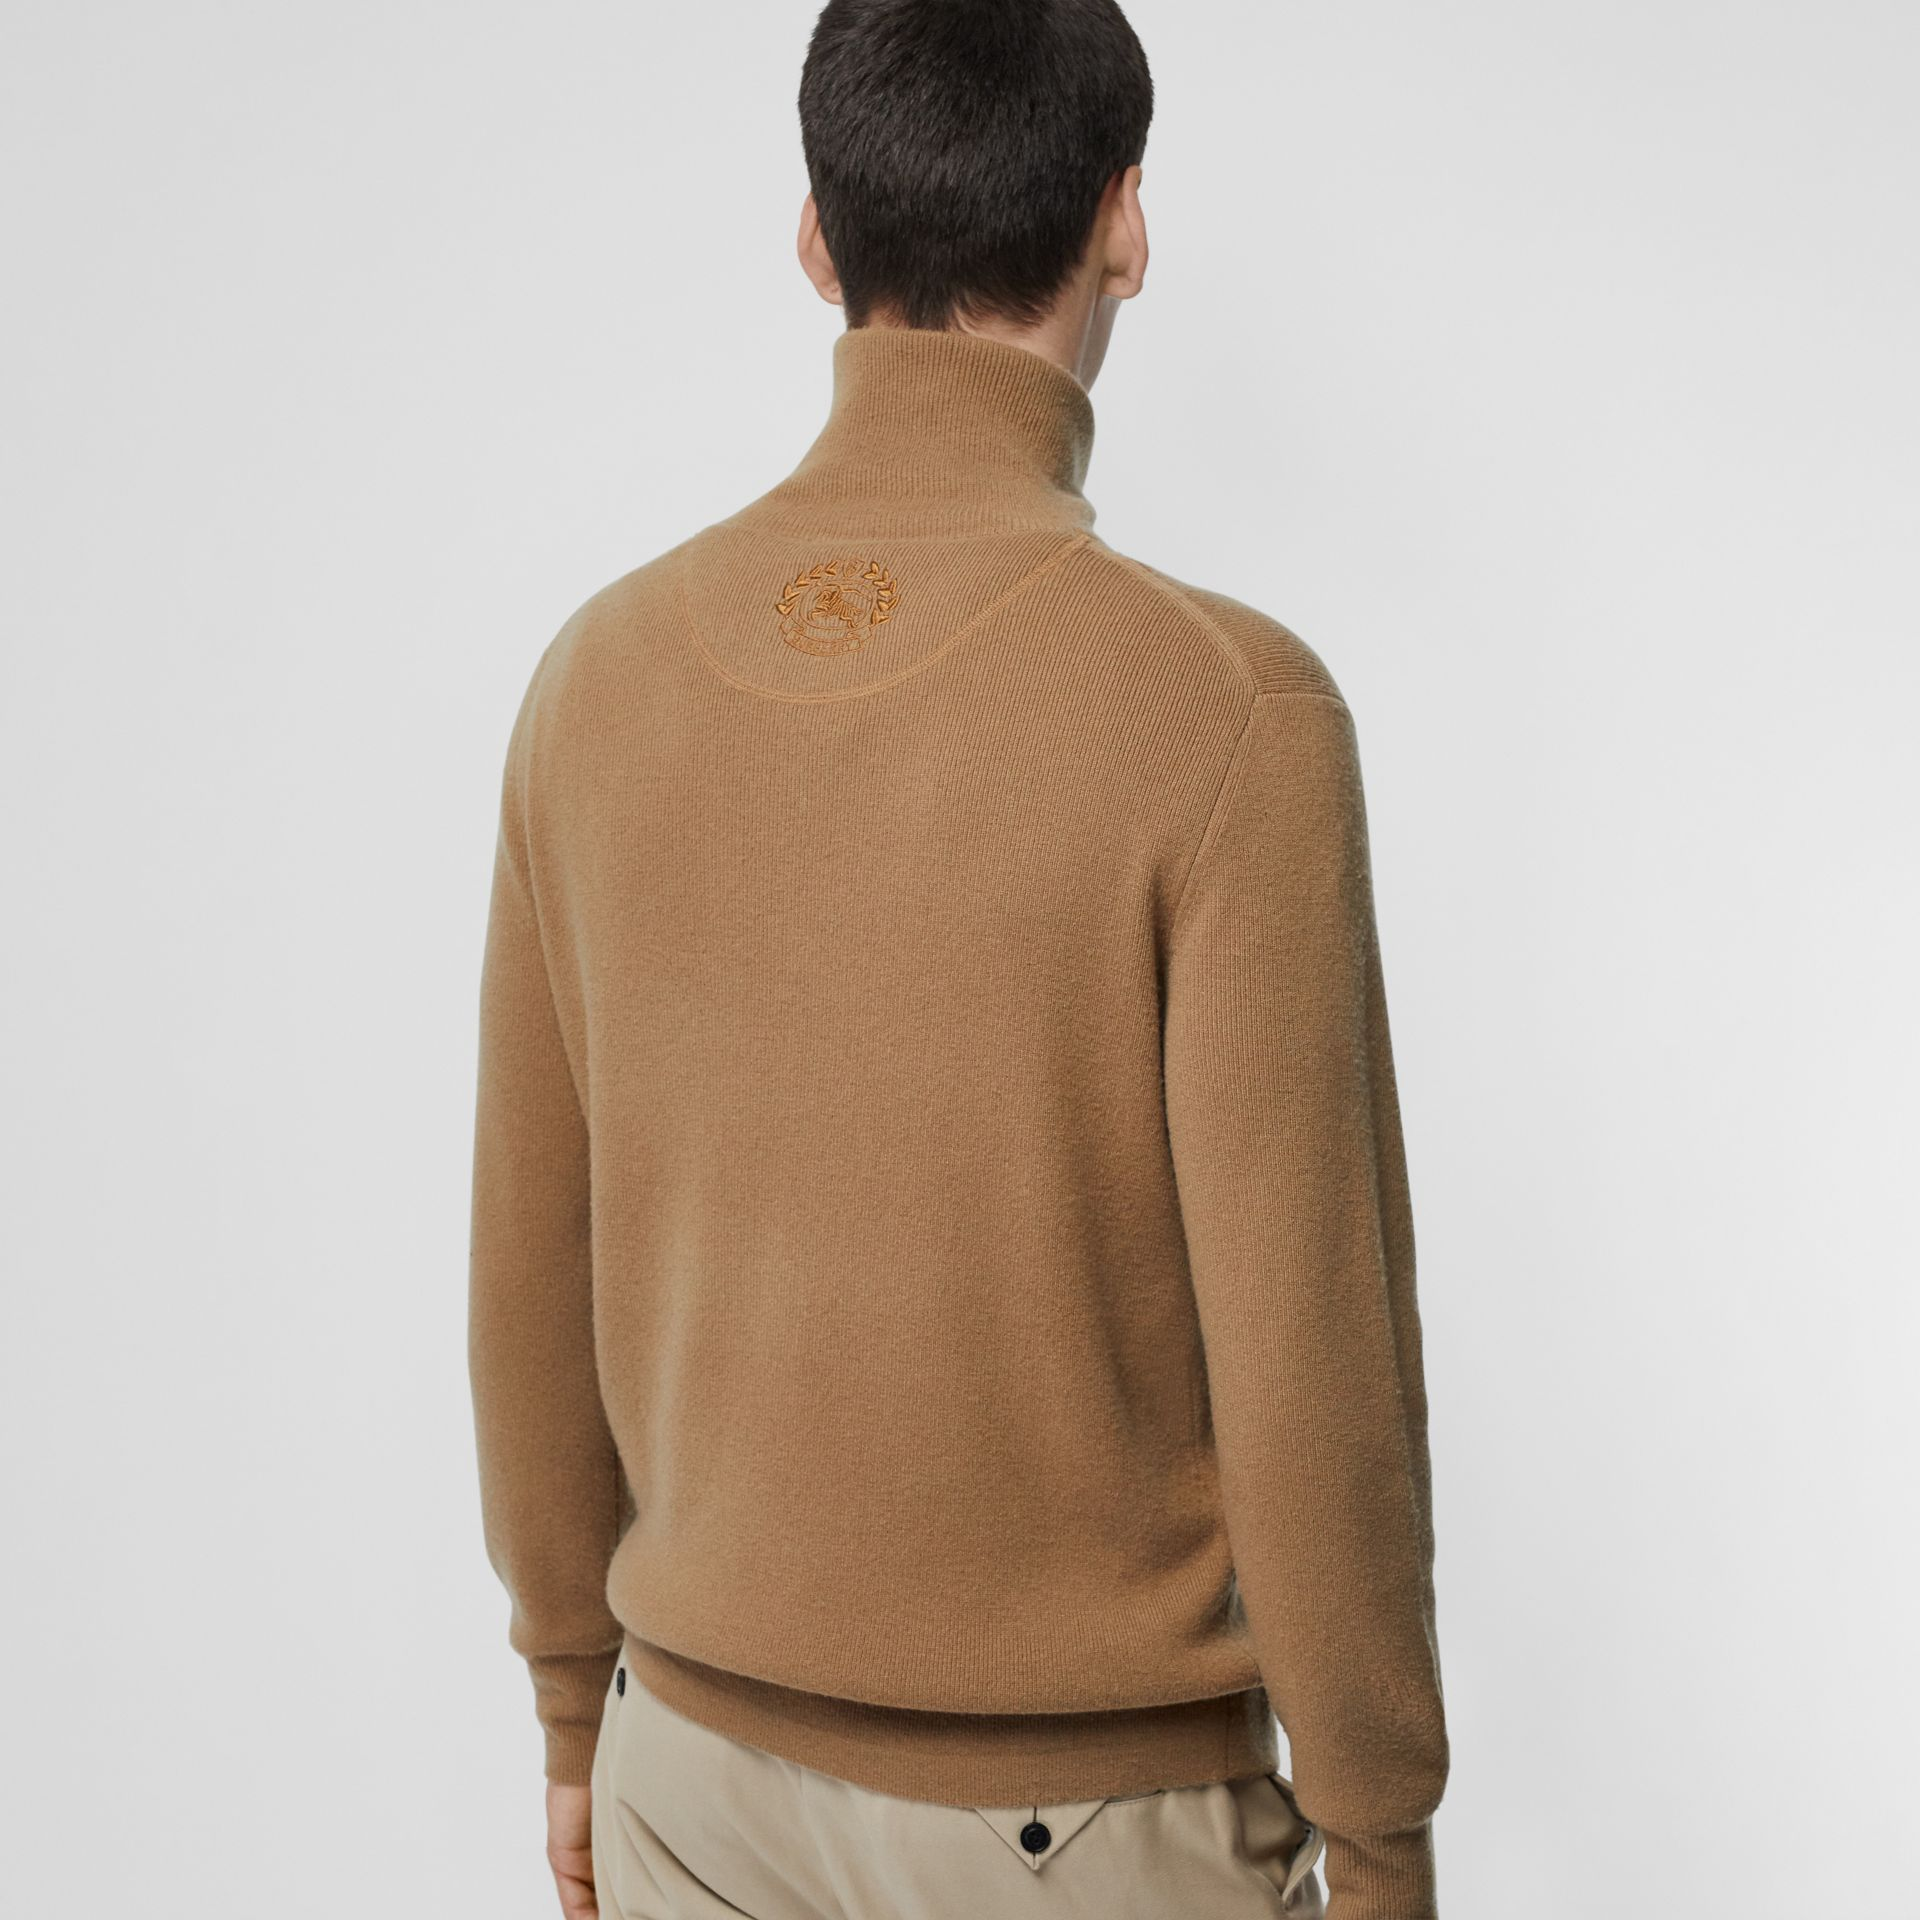 Rib Knit Cashmere Half-zip Sweater in Camel - Men | Burberry United Kingdom - gallery image 2